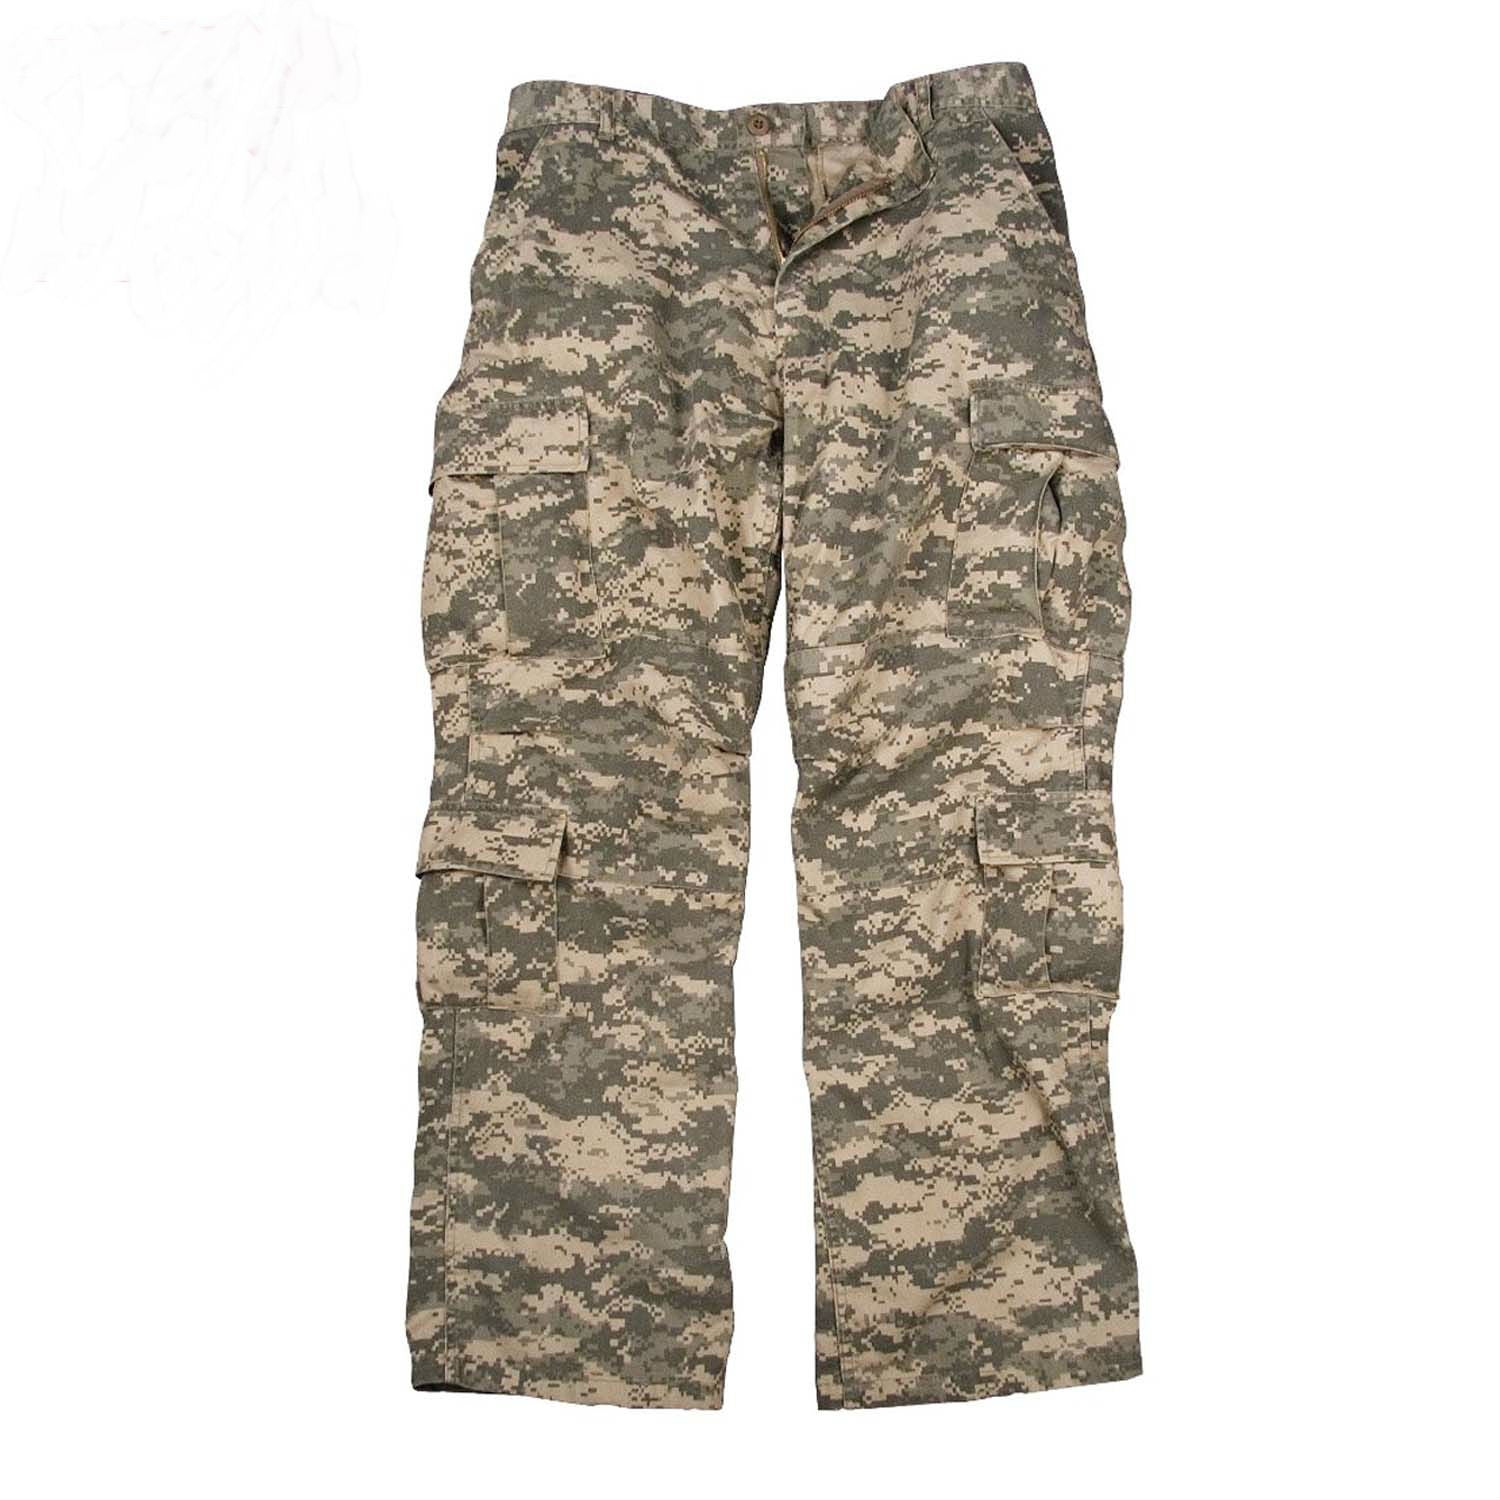 Vintage Paratrooper Fatigue Pants ACU Camouflage